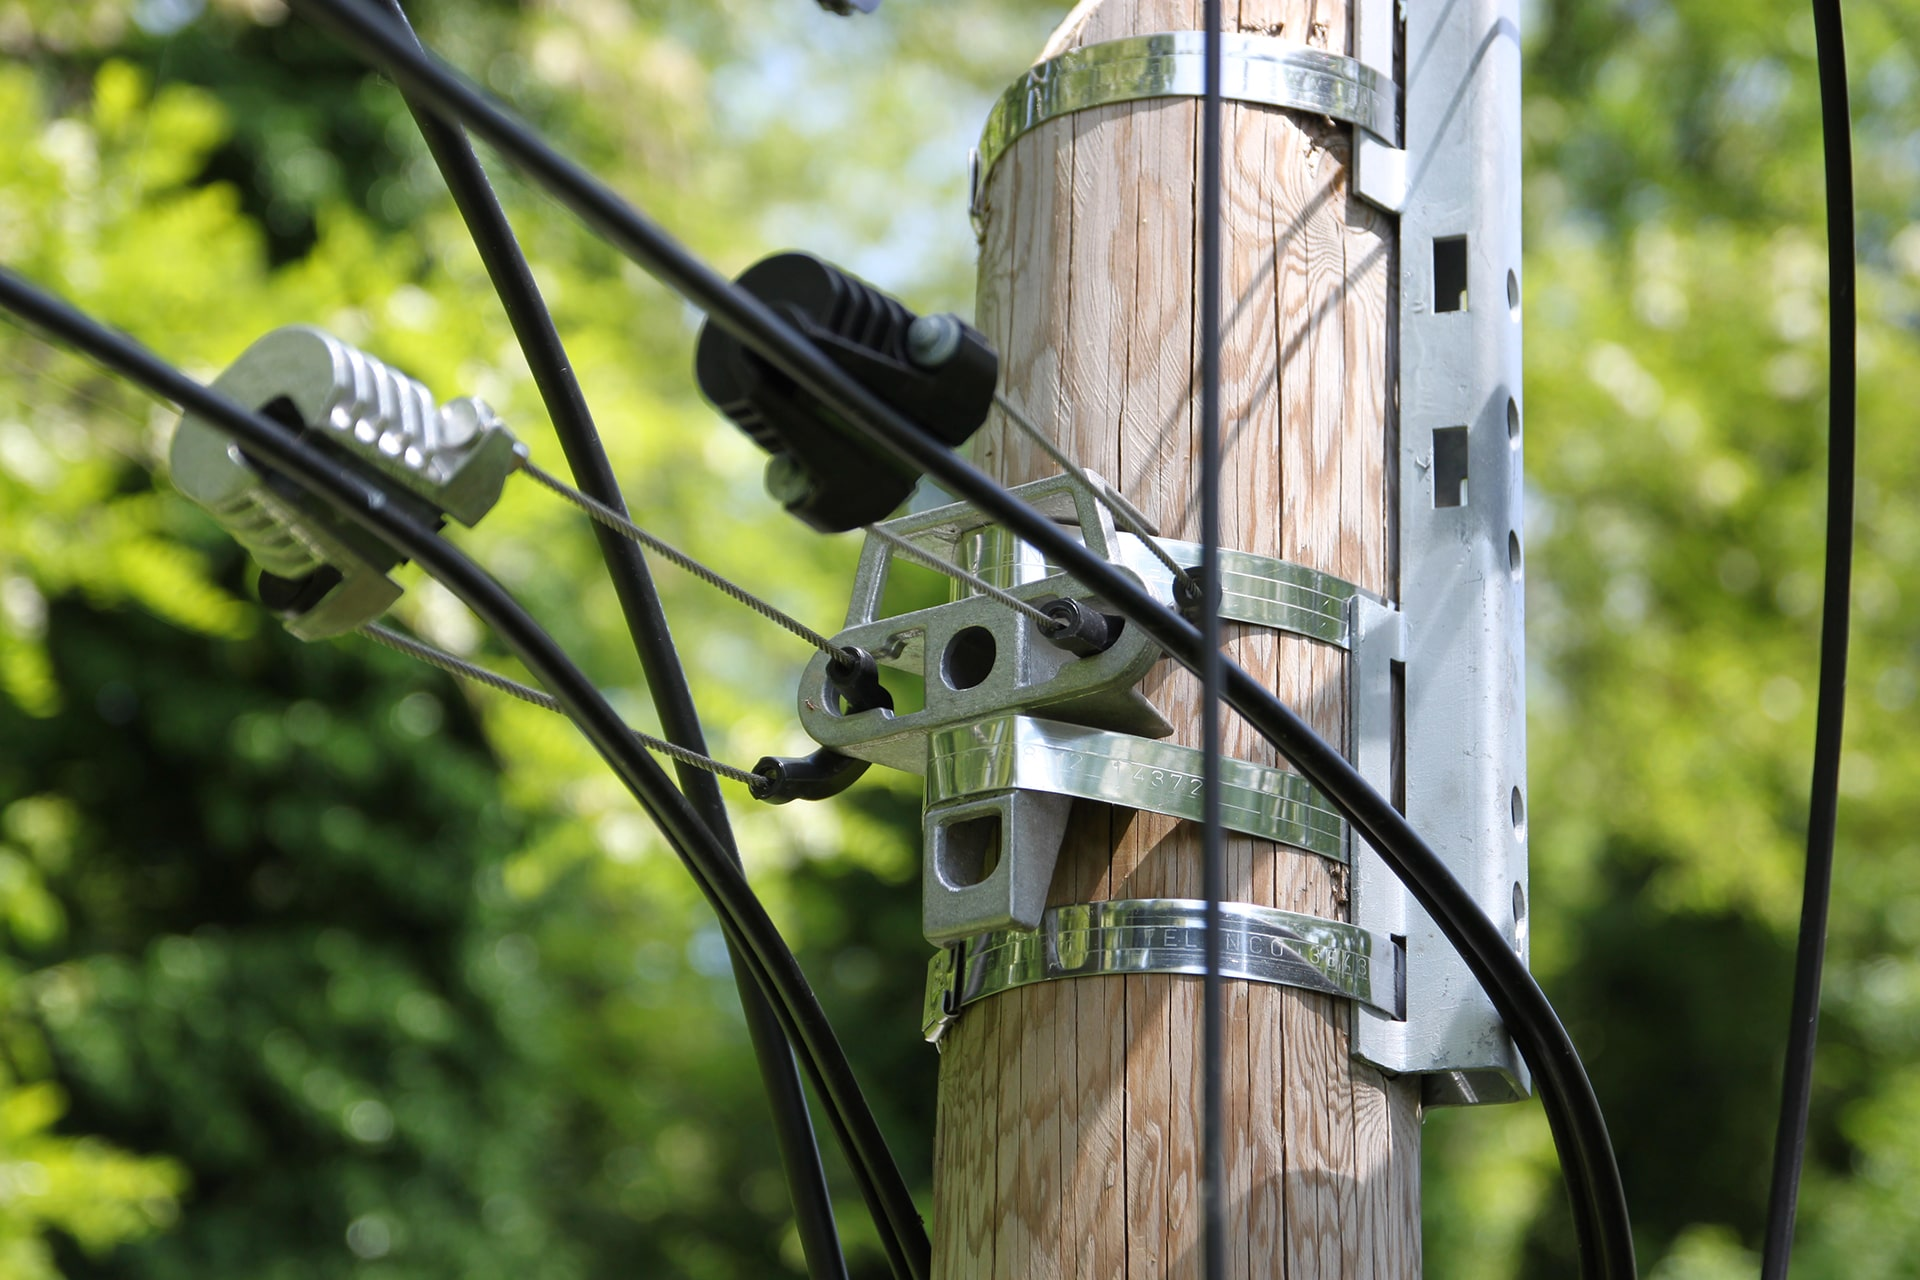 pole line hardware for developing overhead FTTH infrastructure